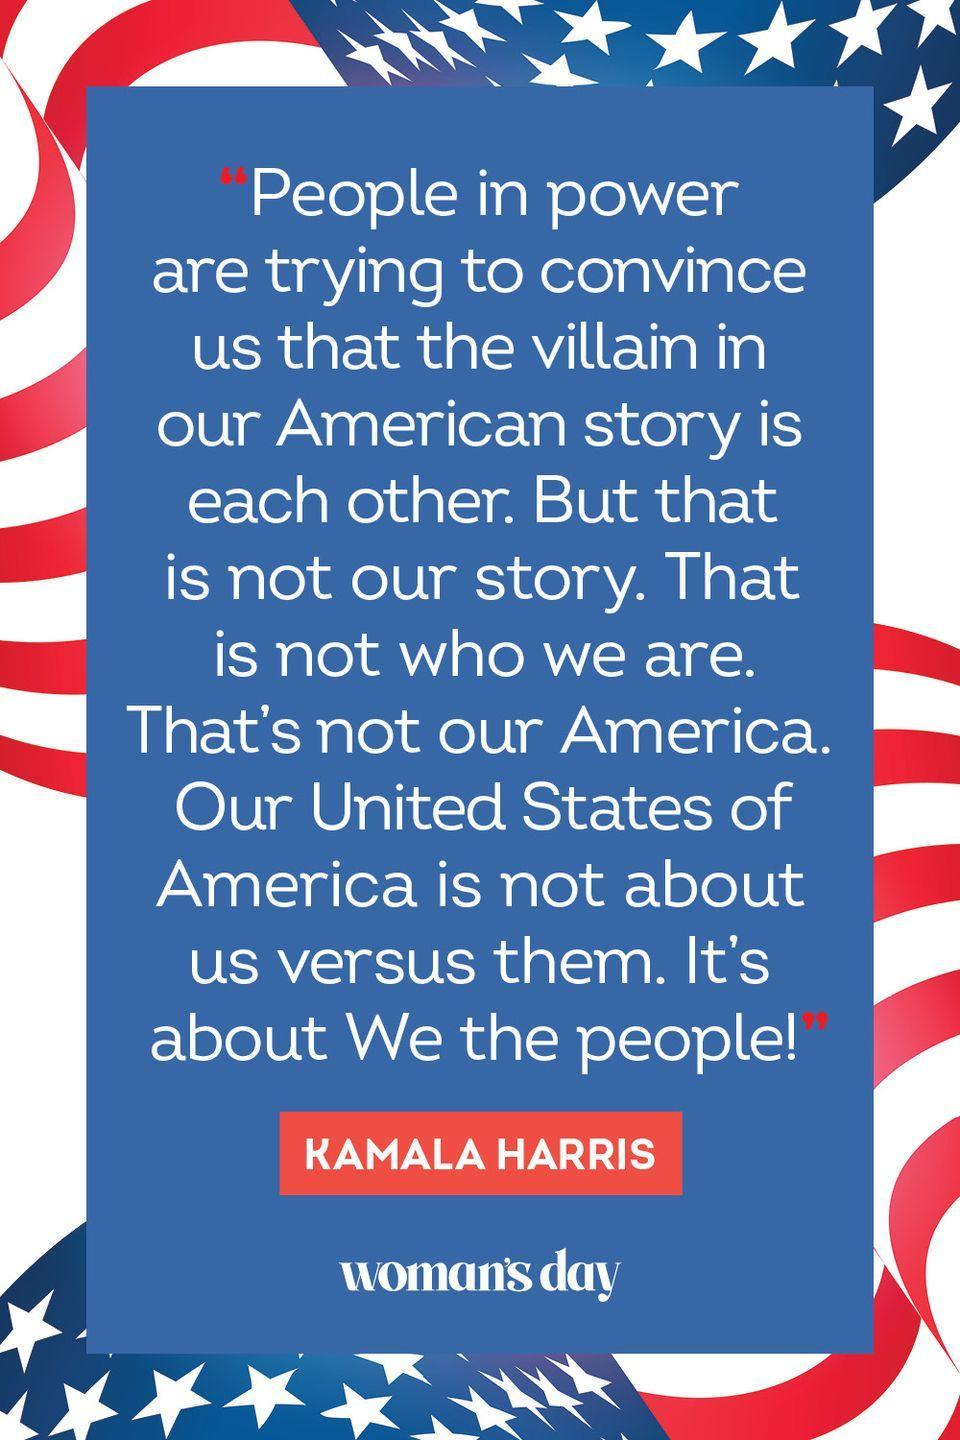 """<p>""""People in power are trying to convince us that the villain in our American story is each other. But that is not our story. That is not who we are. That's not our America. Our United States of America is not about us versus them. It's about We the people!"""" </p>"""